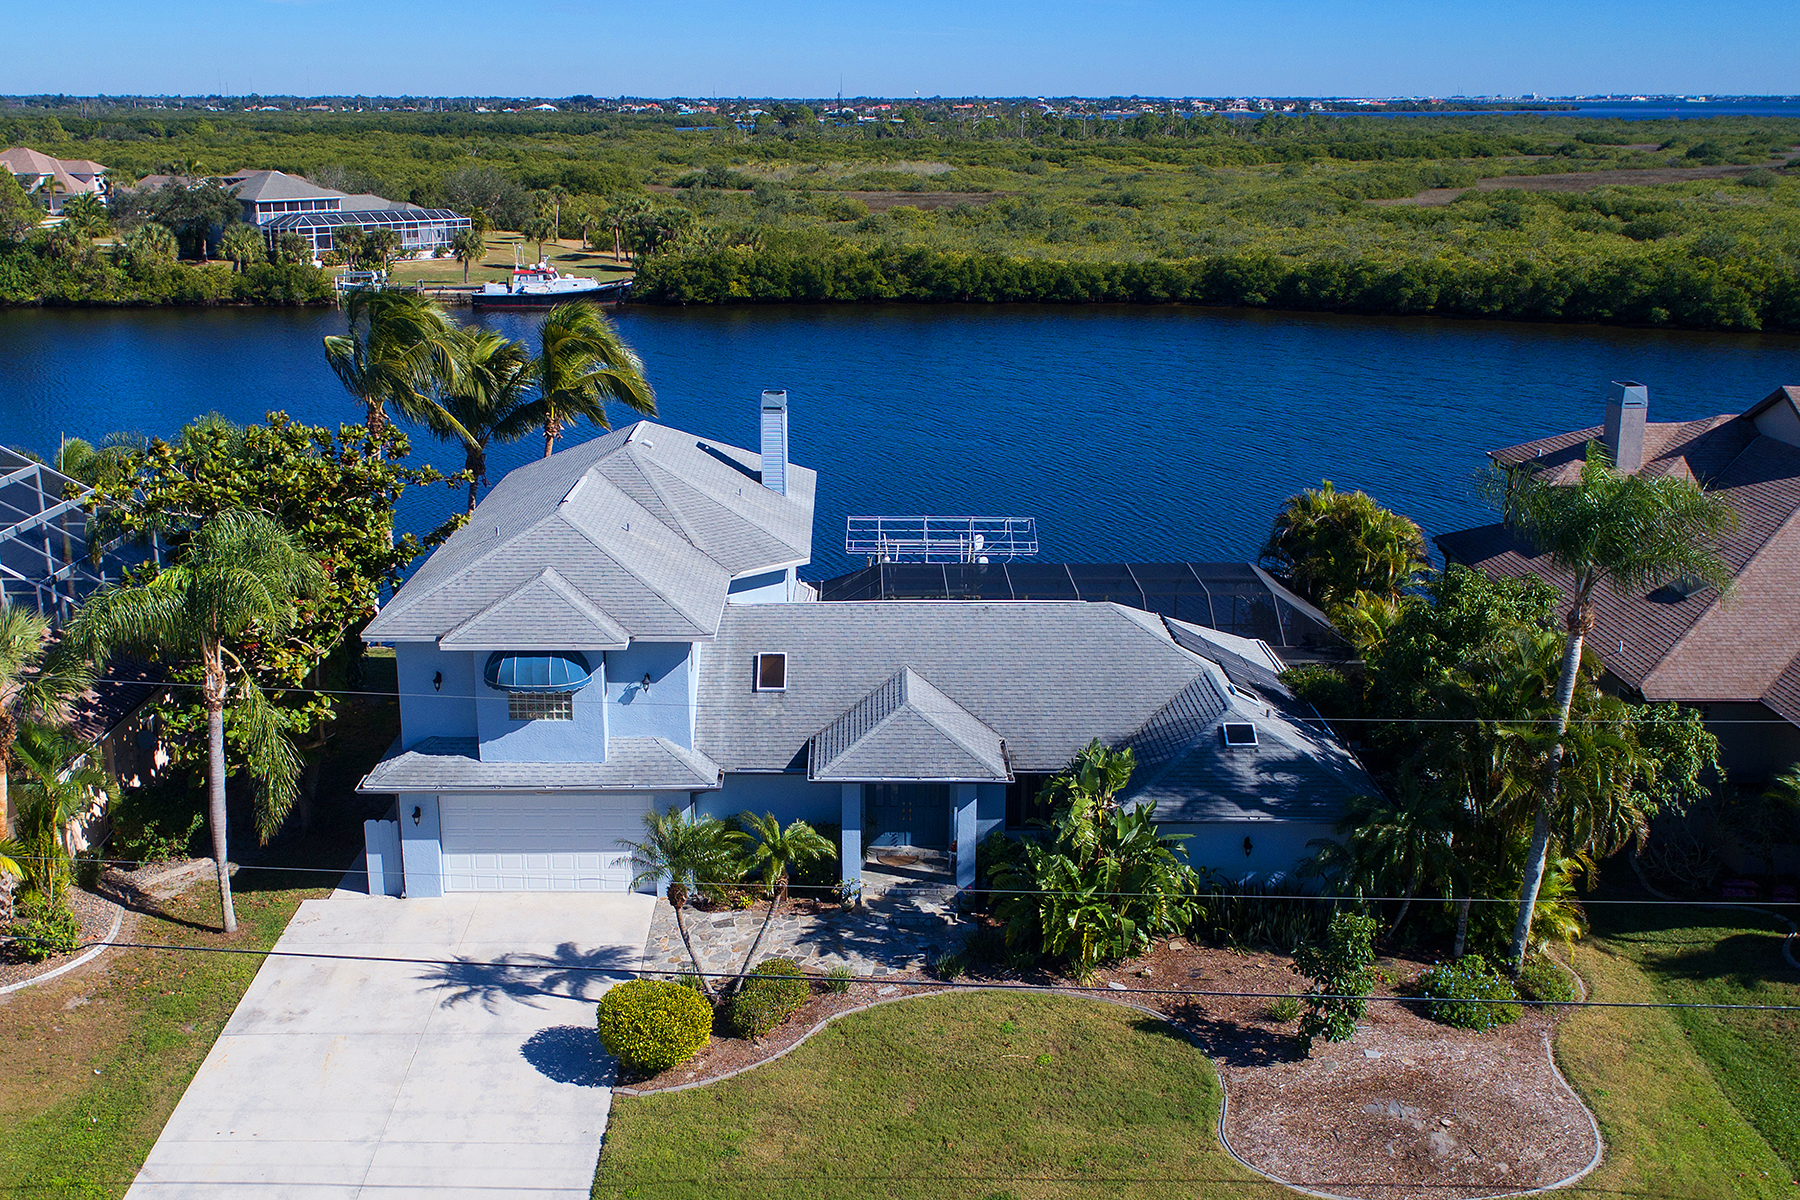 Single Family Home for Sale at PORT CHARLOTTE 18971 Mcgrath Cir Port Charlotte, Florida 33948 United States